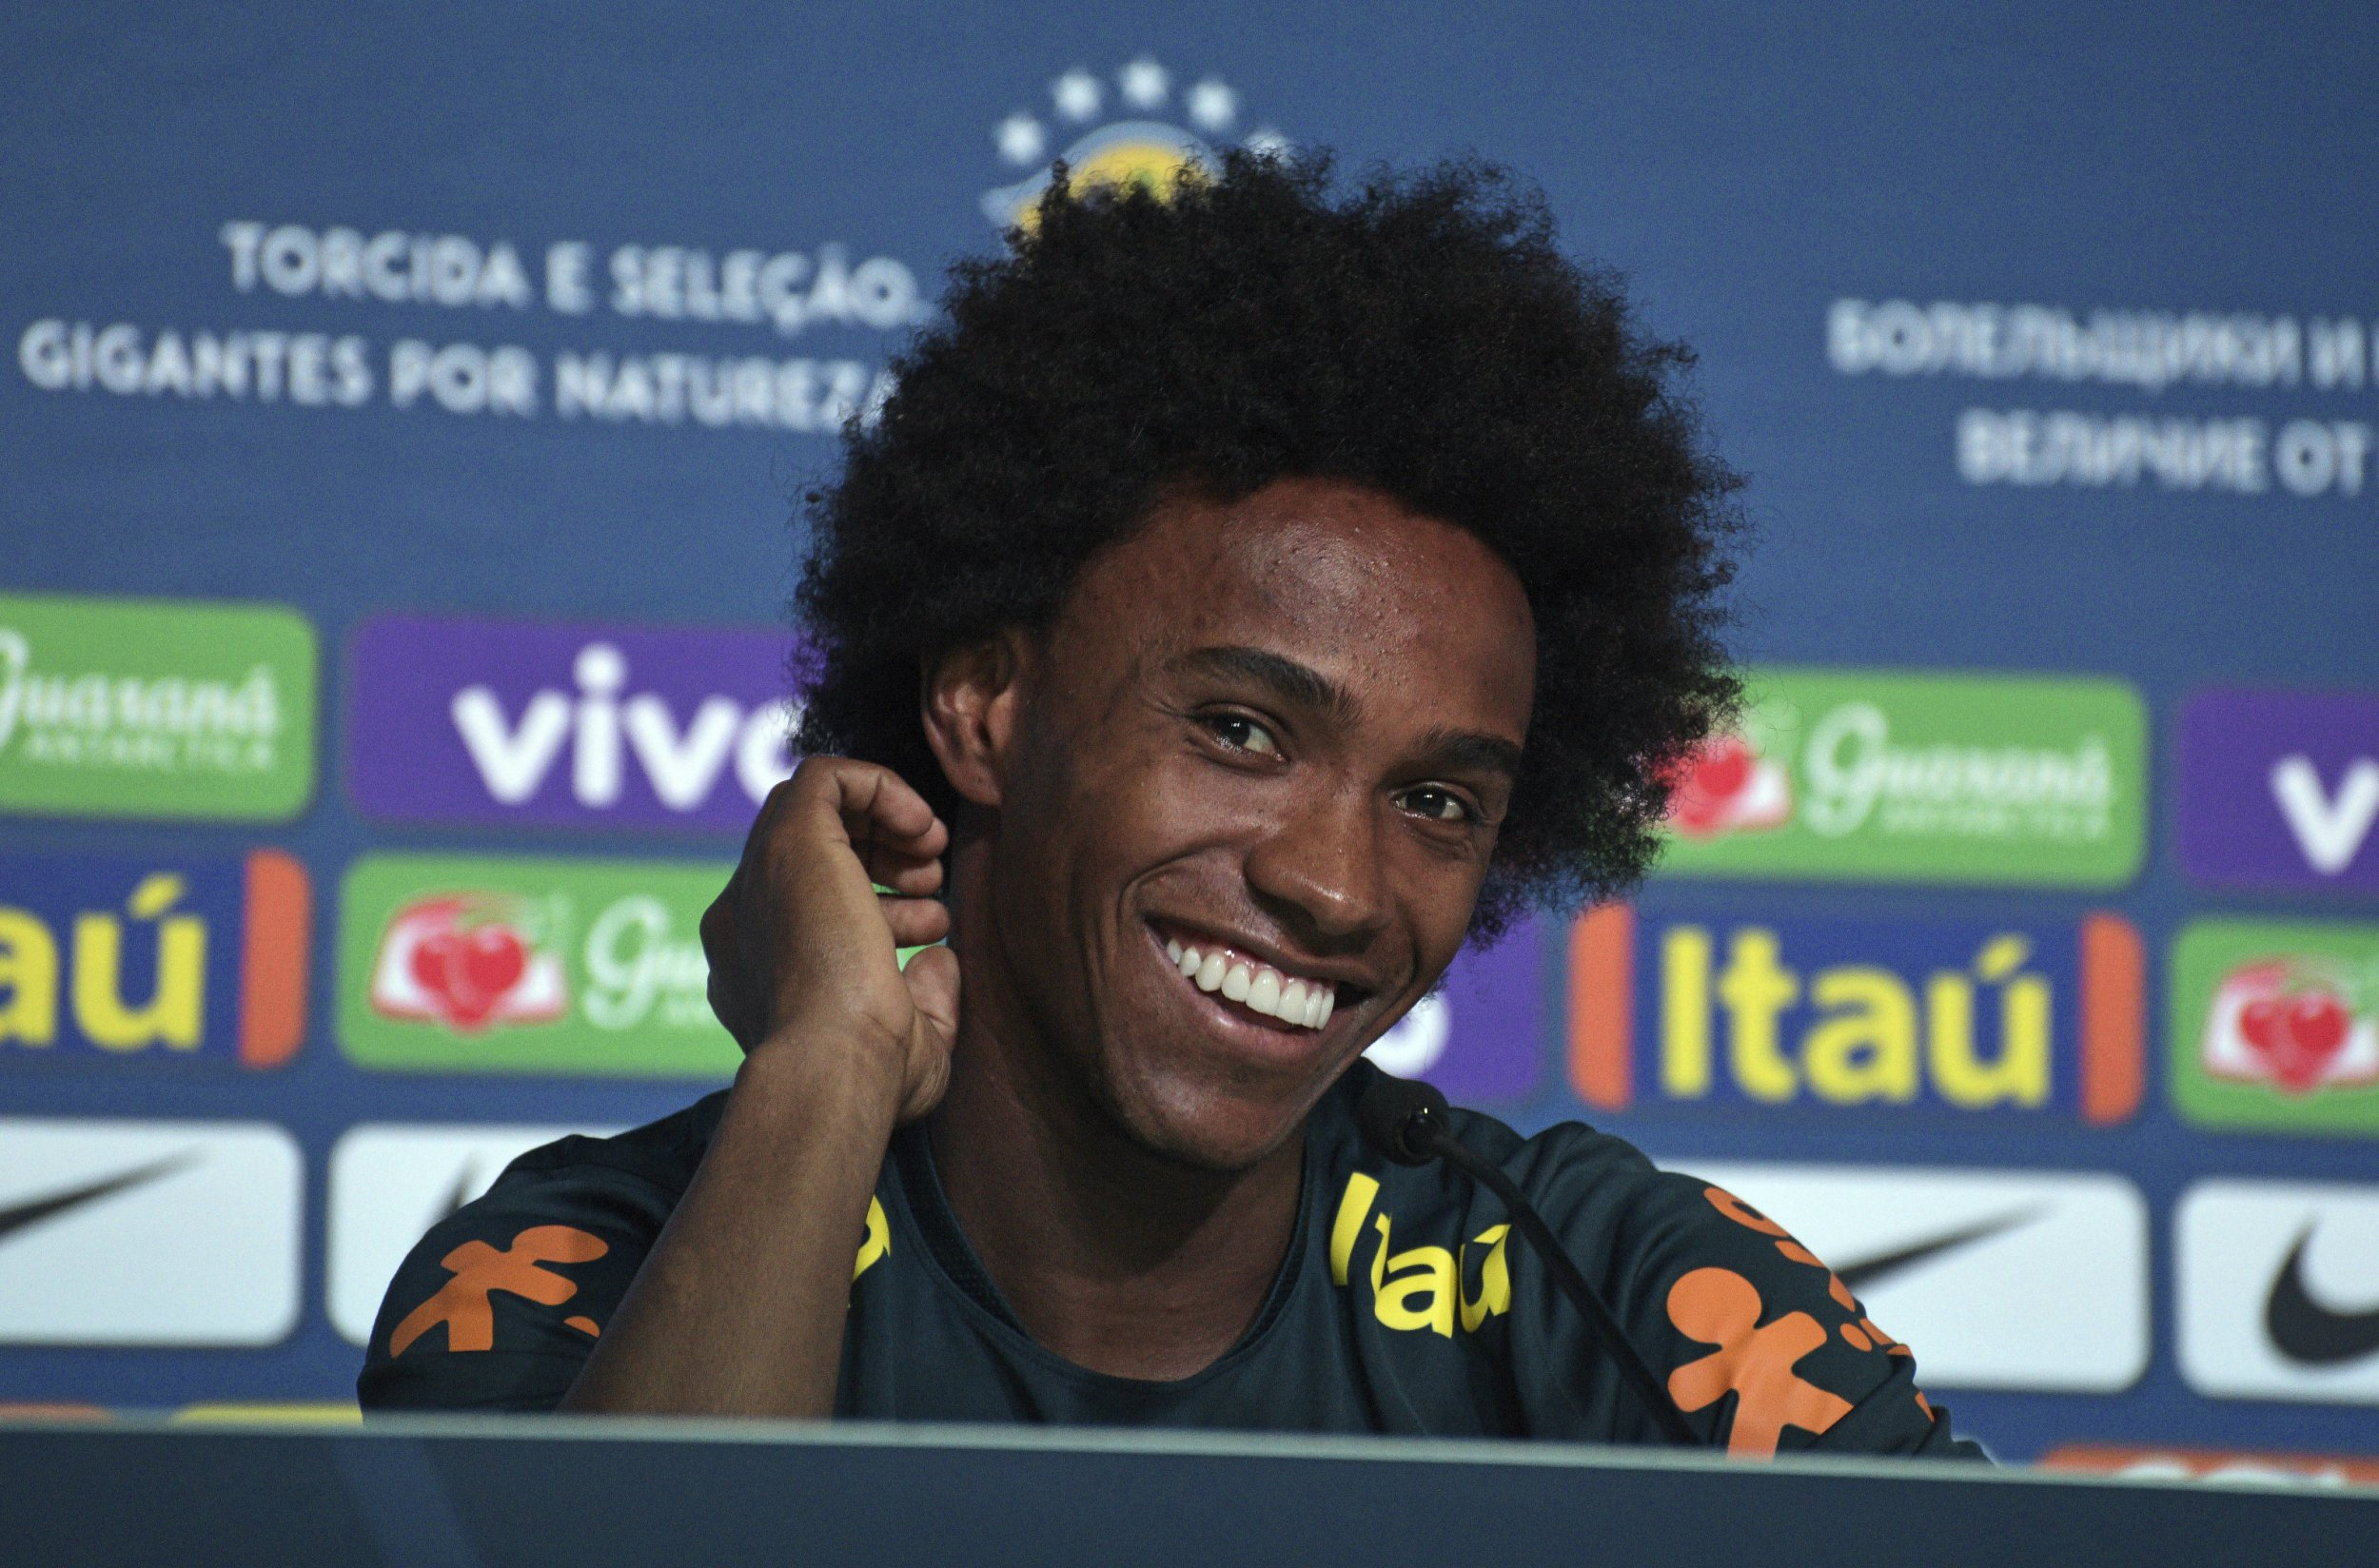 Brazil's Willian smiles during a press conference in Sochi, Russia, Wednesday, July 4, 2018. Brazil will face Belgium on July 6 in the quarterfinals for the soccer World Cup. (AP Photo/Ekaterina Lyzlova)